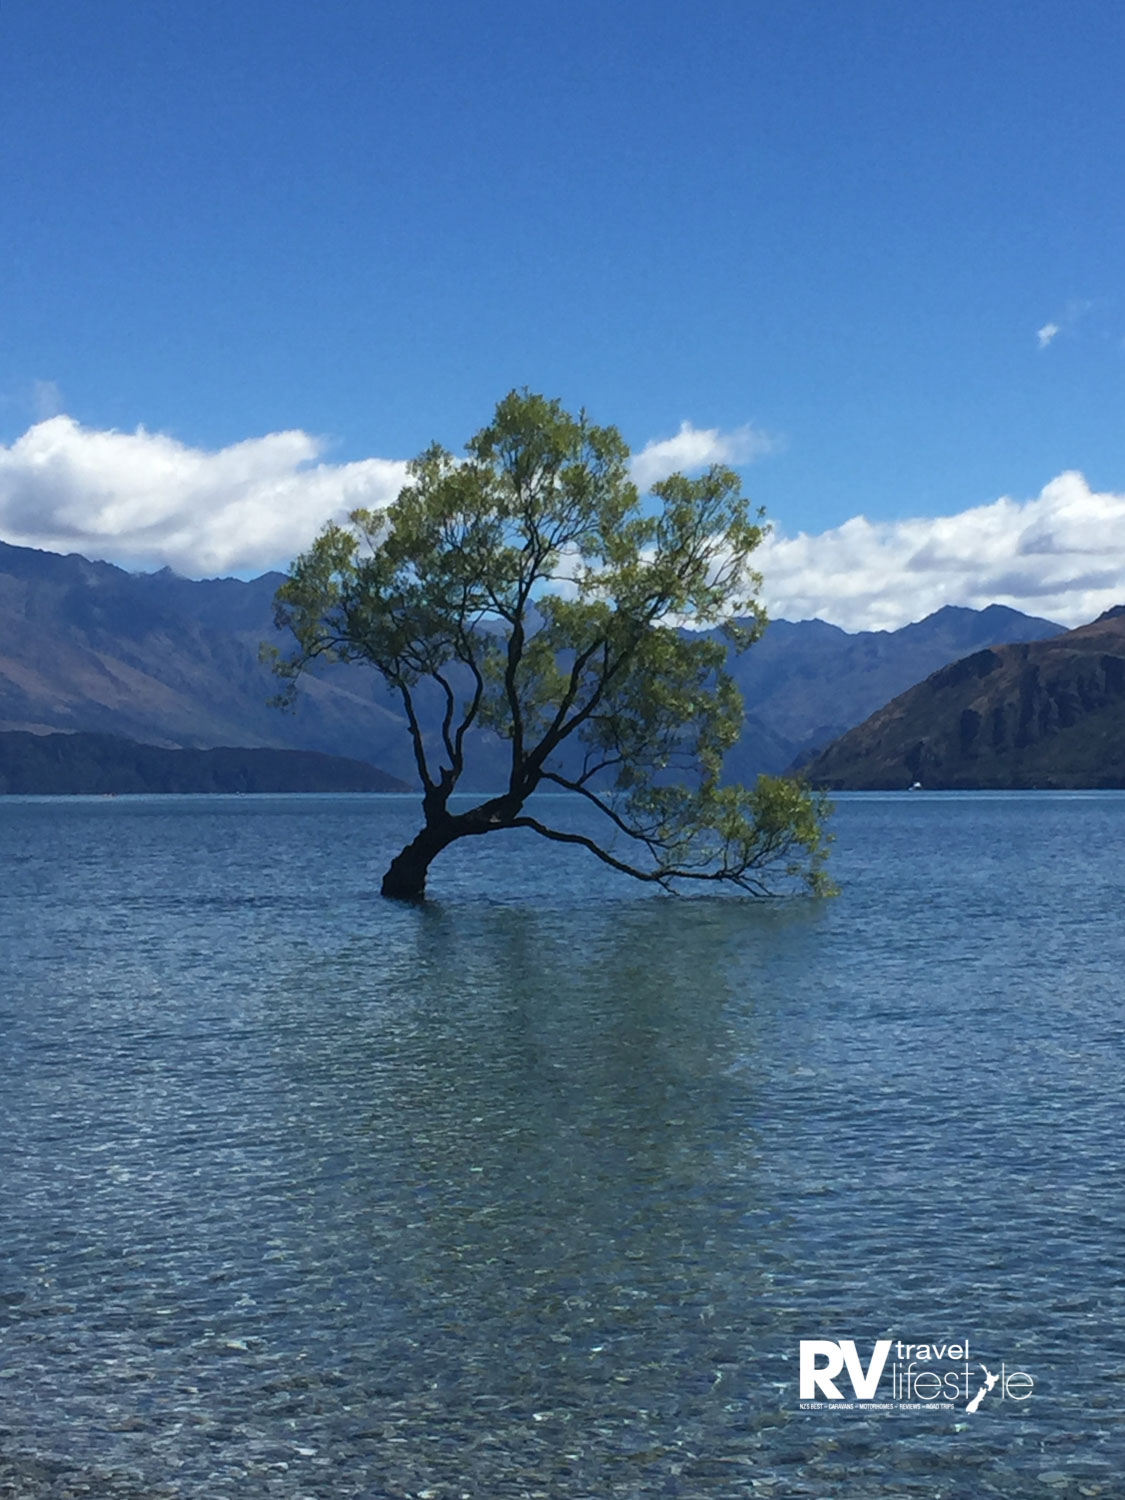 In spring, the famous Wanaka tree comes back to life